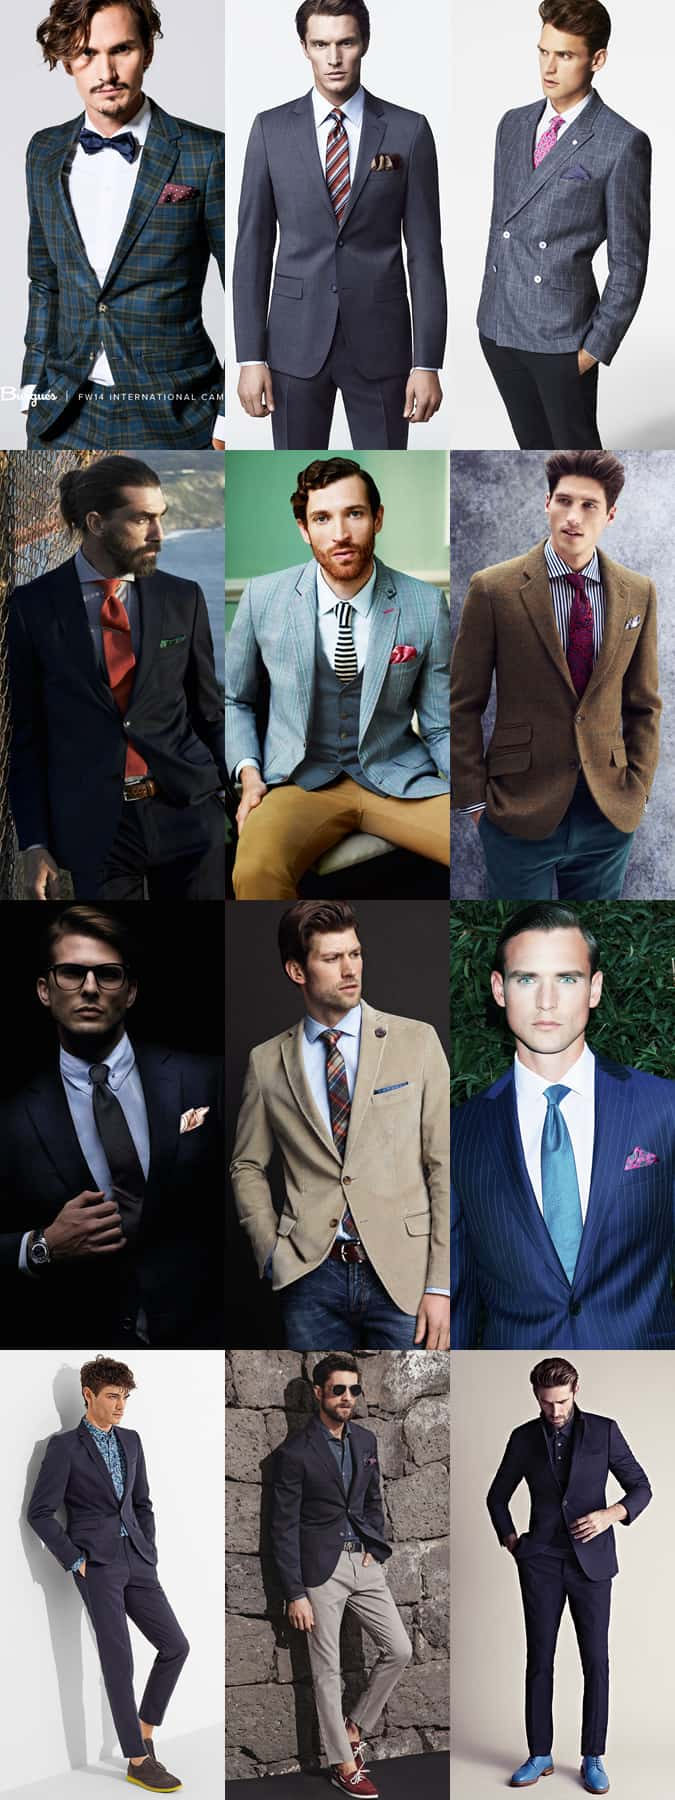 Men's Pocket Square and Tie Combinations Lookbook